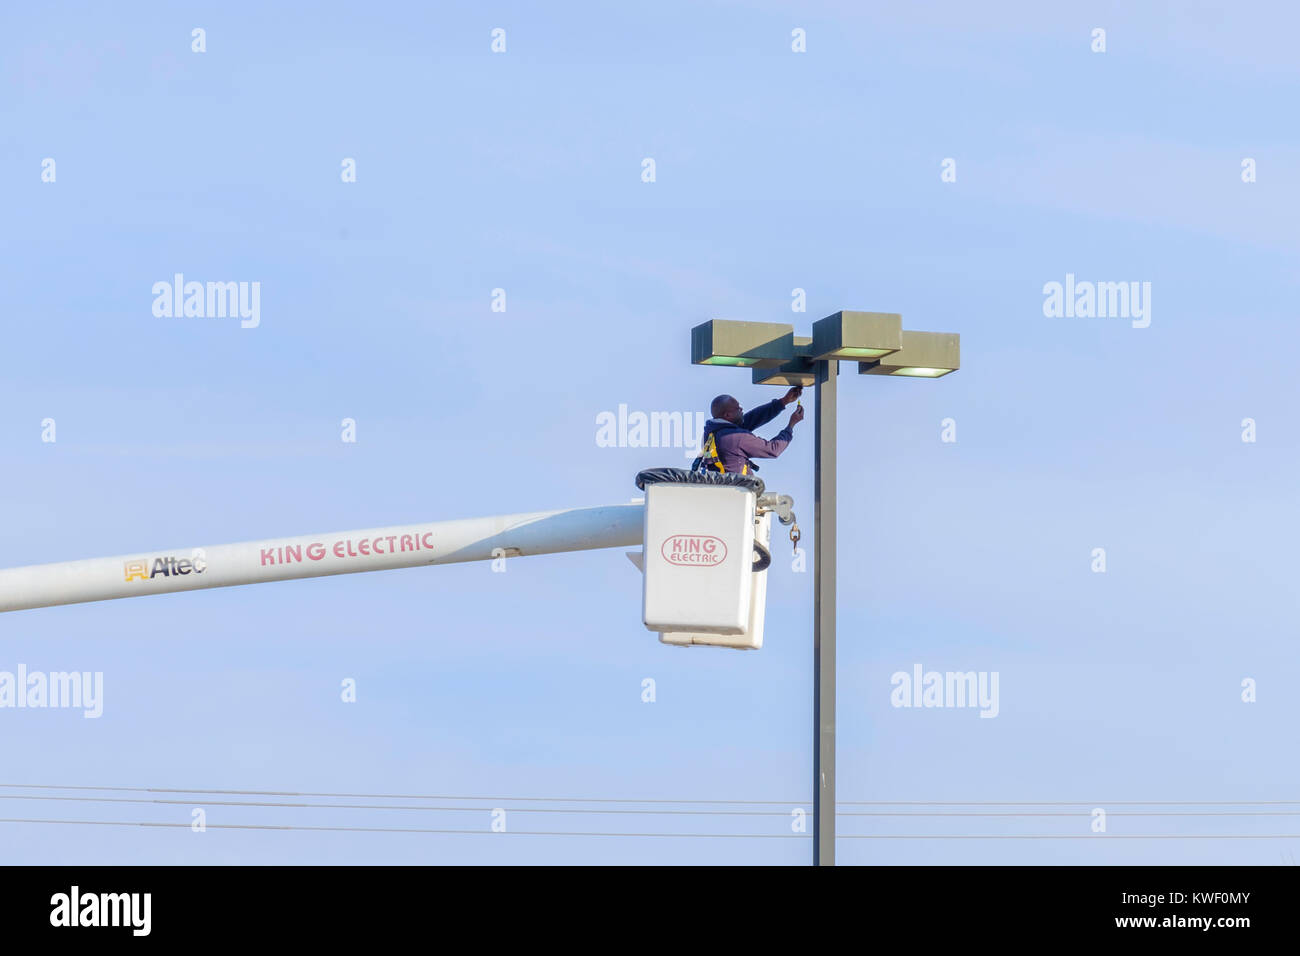 A workman in a lift bucket works on a shopping mall light fixture. Oklahoma City, Oklahoma, USA. - Stock Image